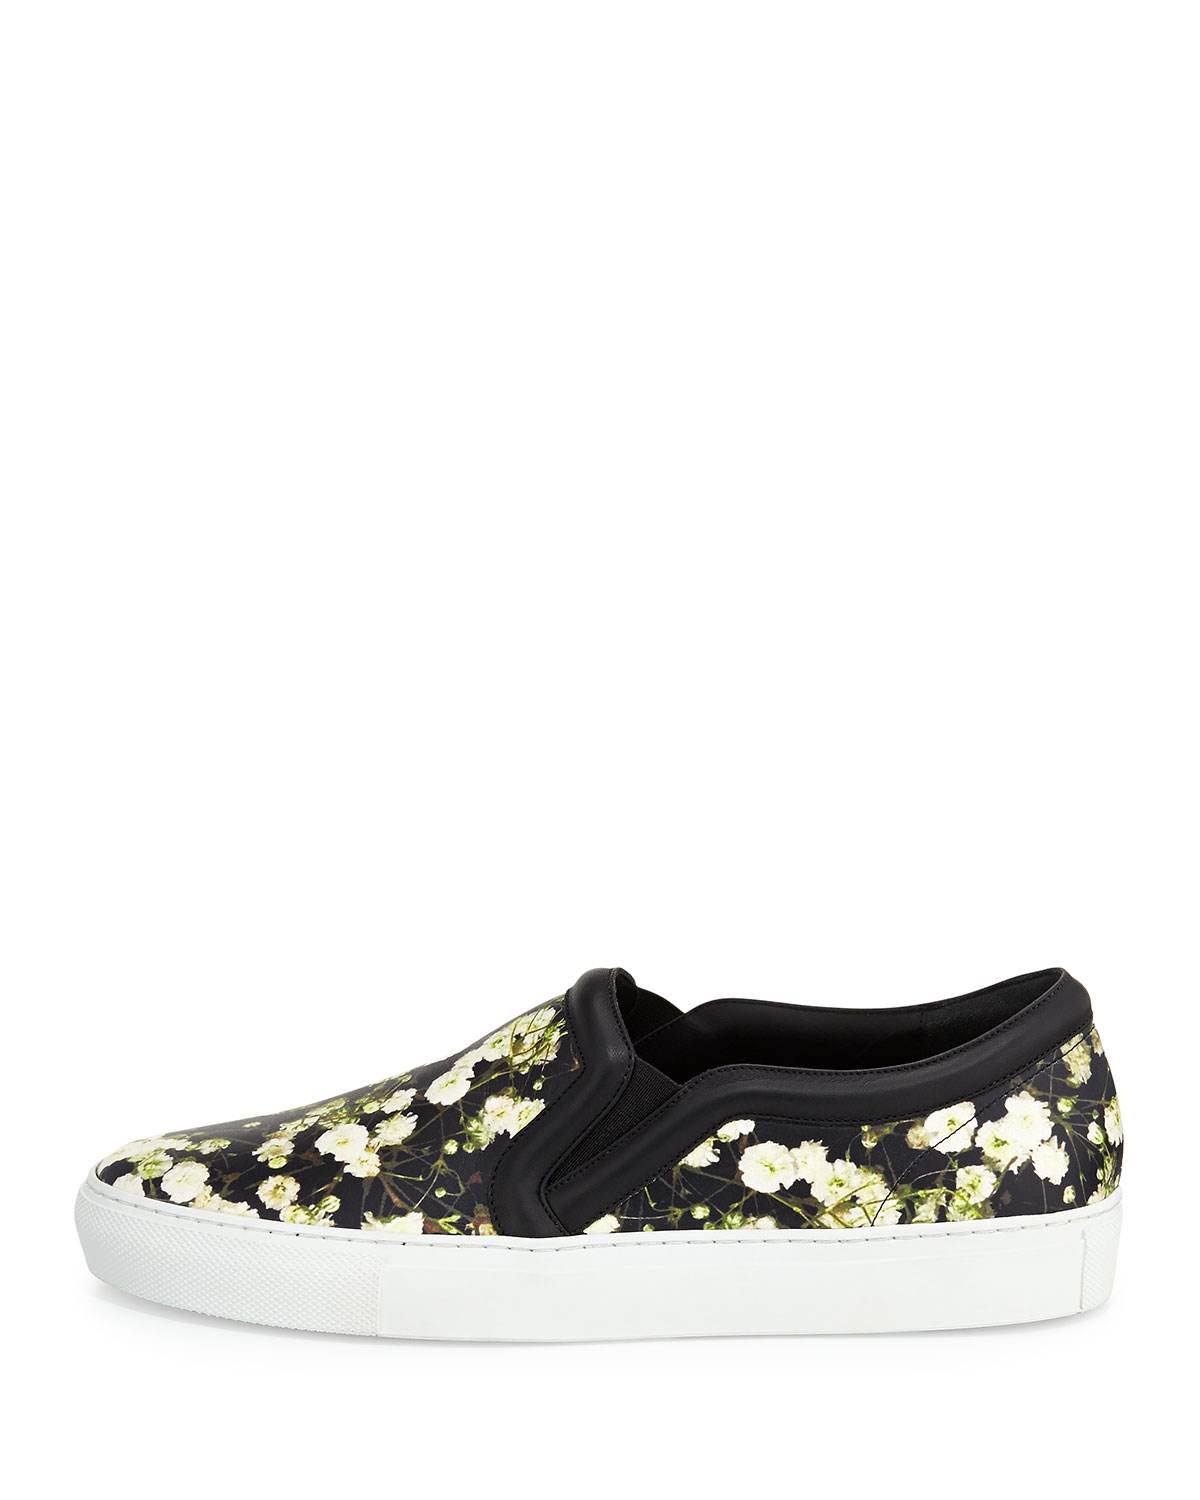 Givenchy Skate Shoes In Floral Print And Black Leather